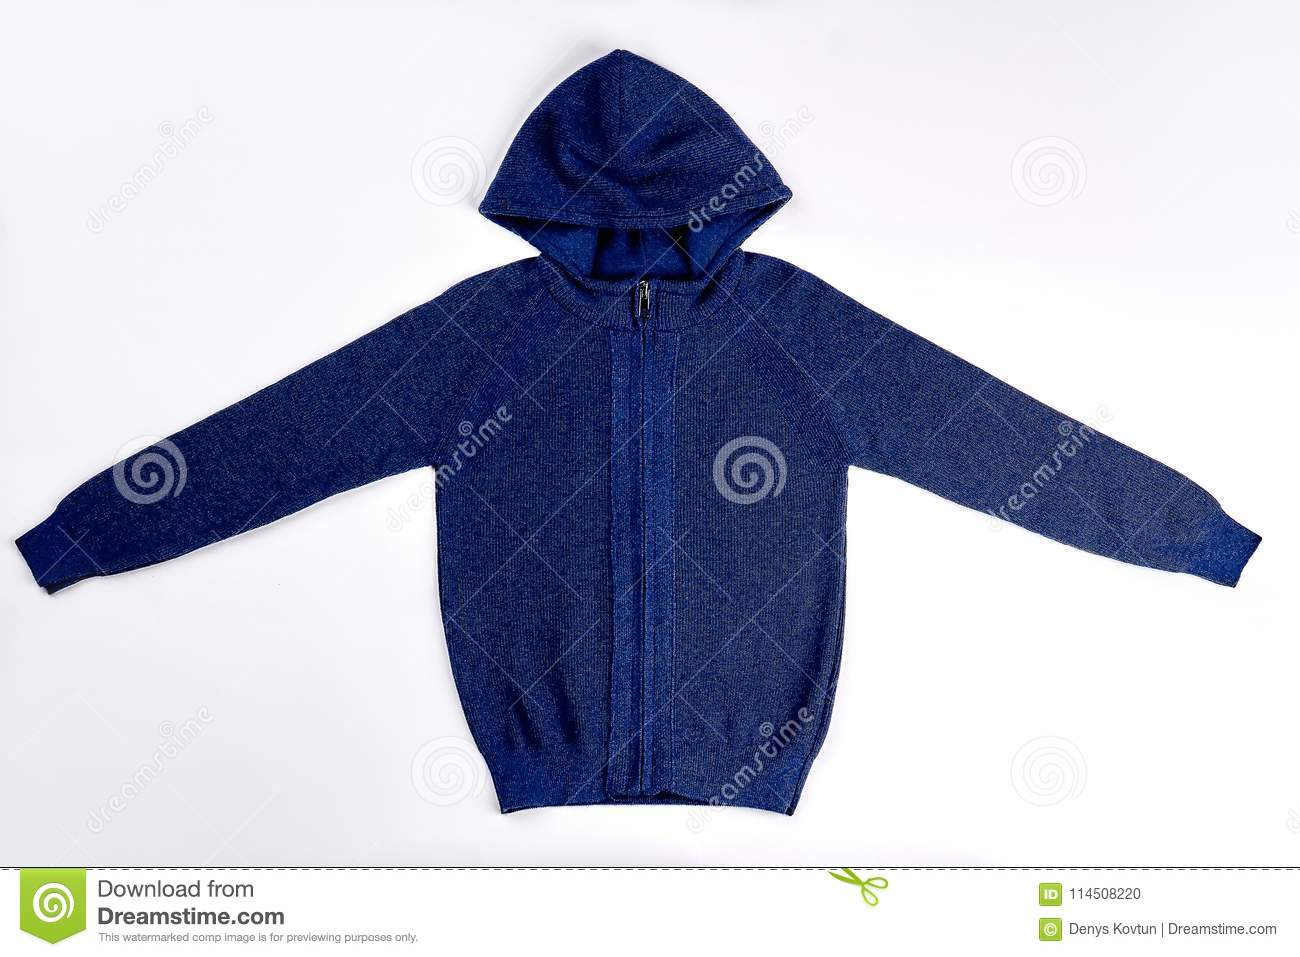 94fdda2d45 Dark Blue Hooded Knitted Pullover. Stock Photo - Image of hoodie ...